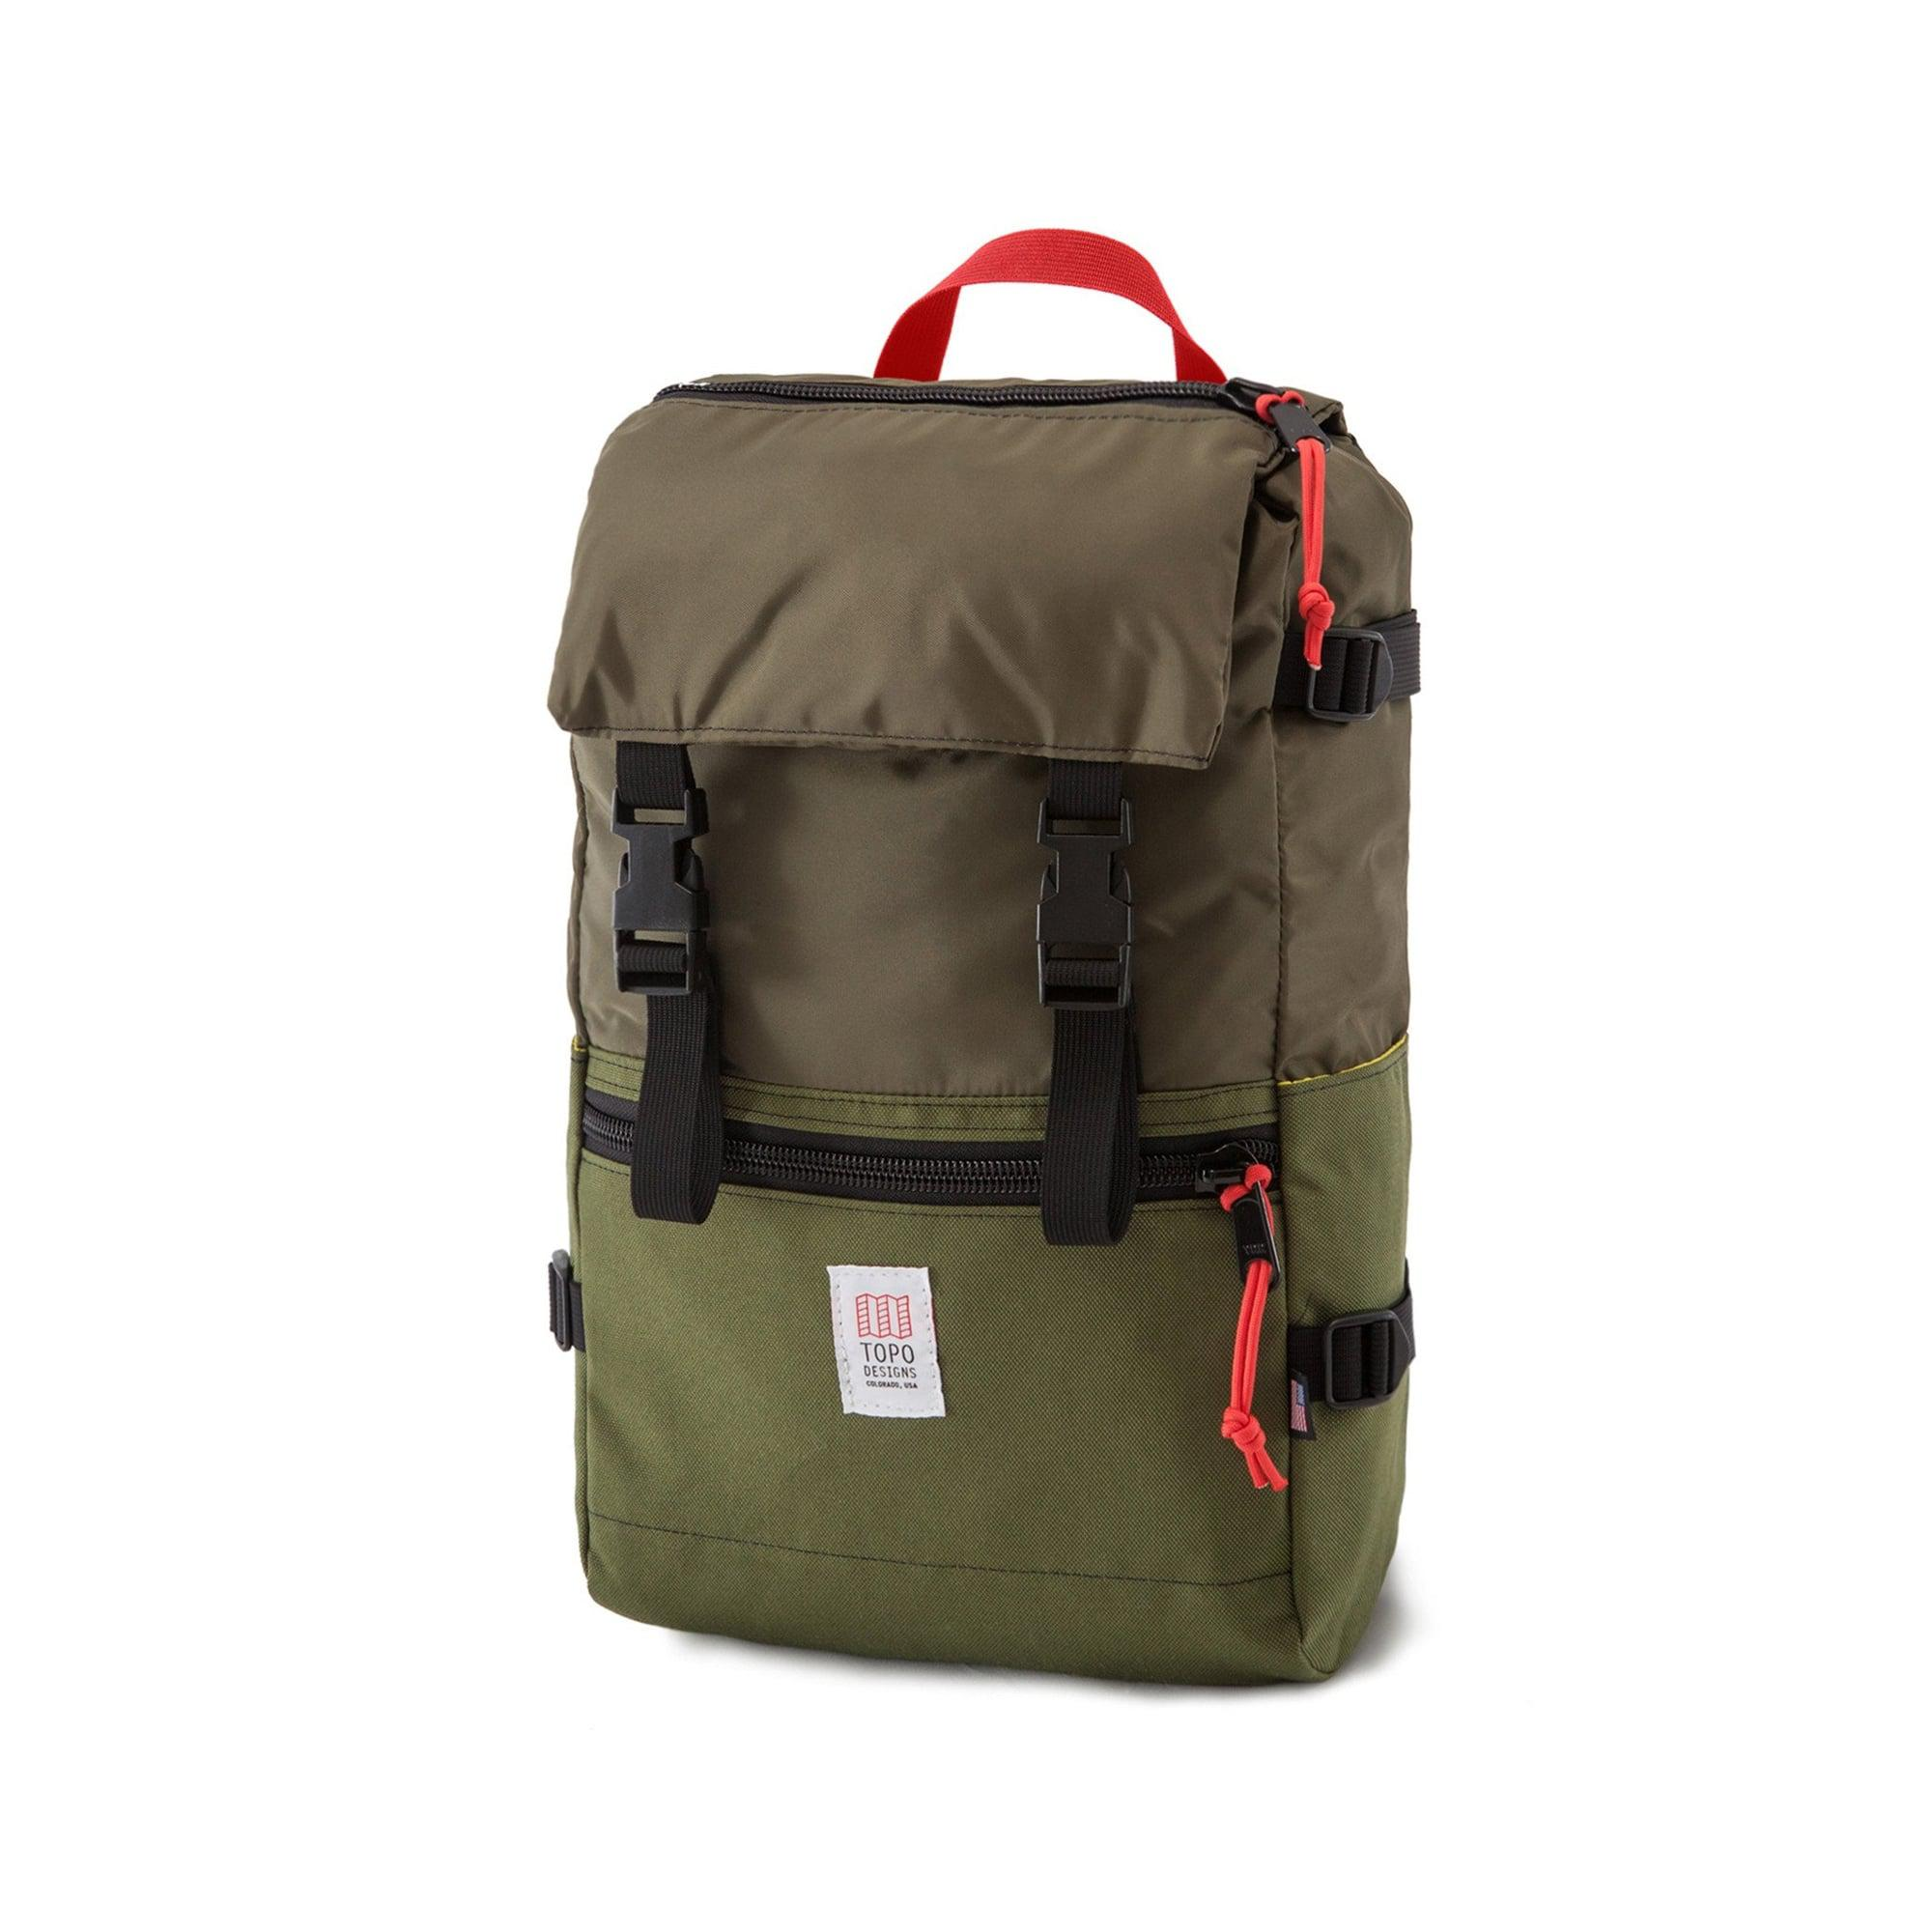 55b937bb9 Topo Designs Topo Design Rover Pack Olive Backpack in Green for Men ...